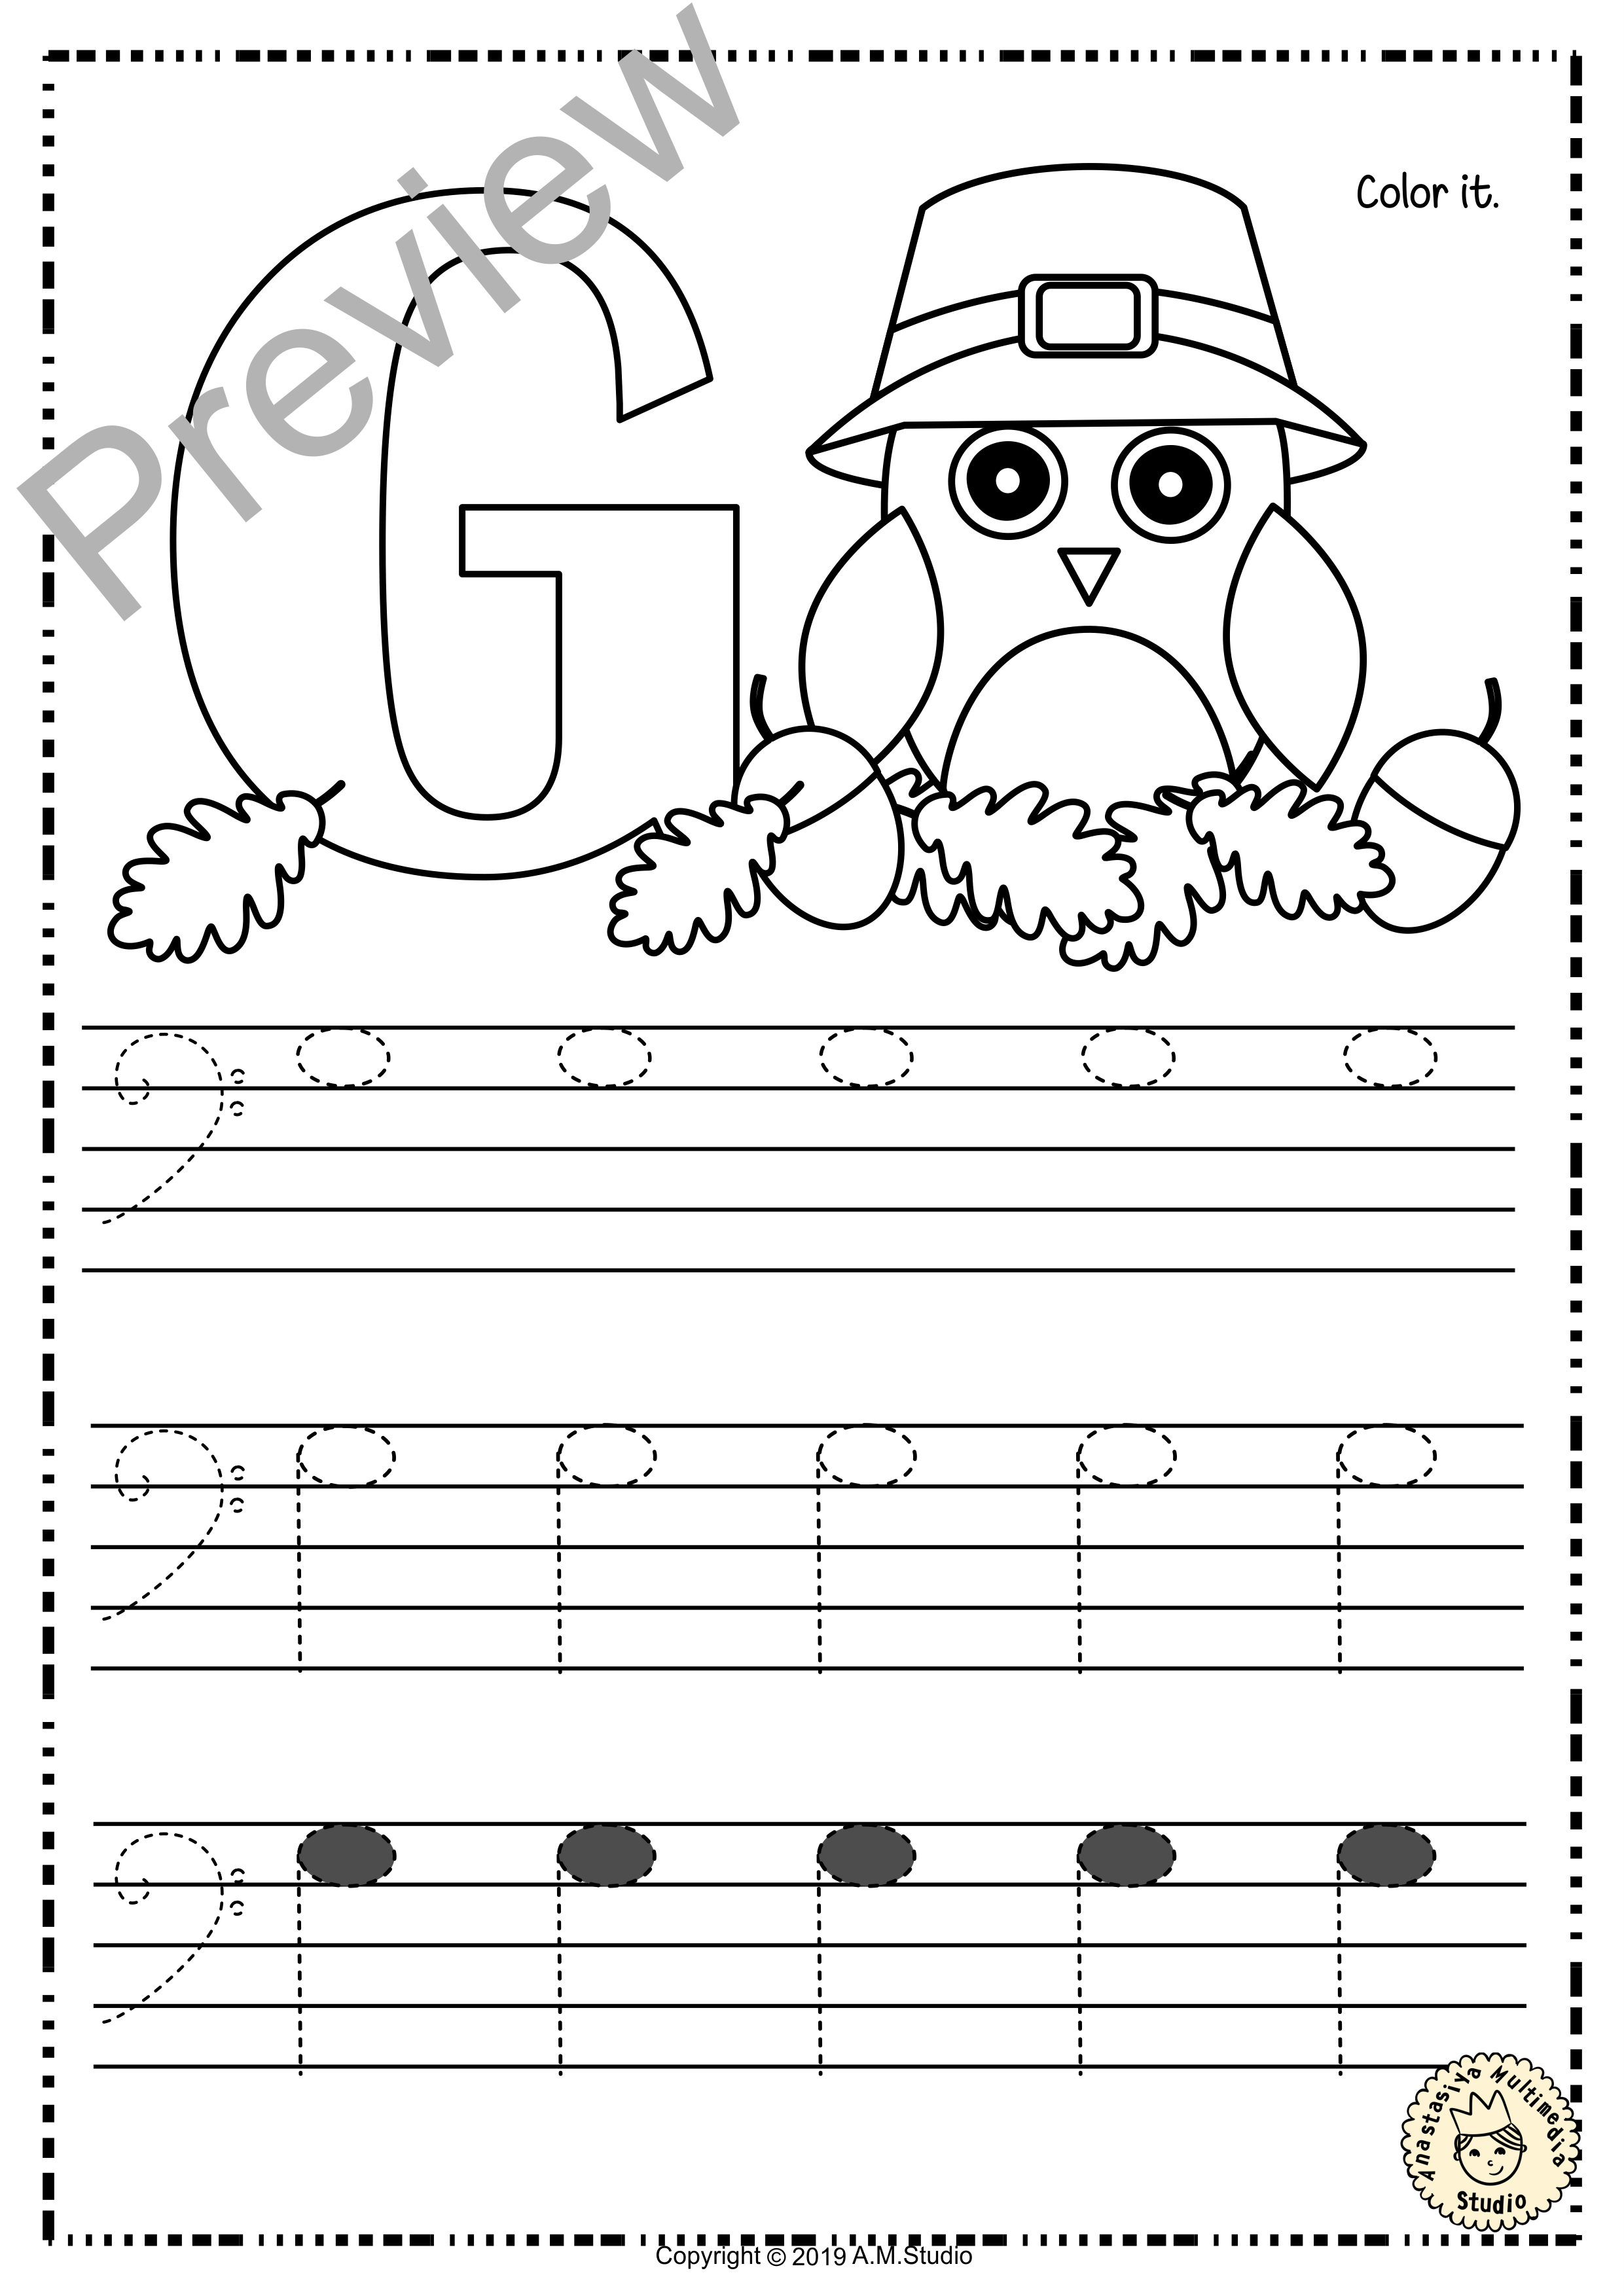 Bass Clef Tracing Music Notes Worksheets For Fall With